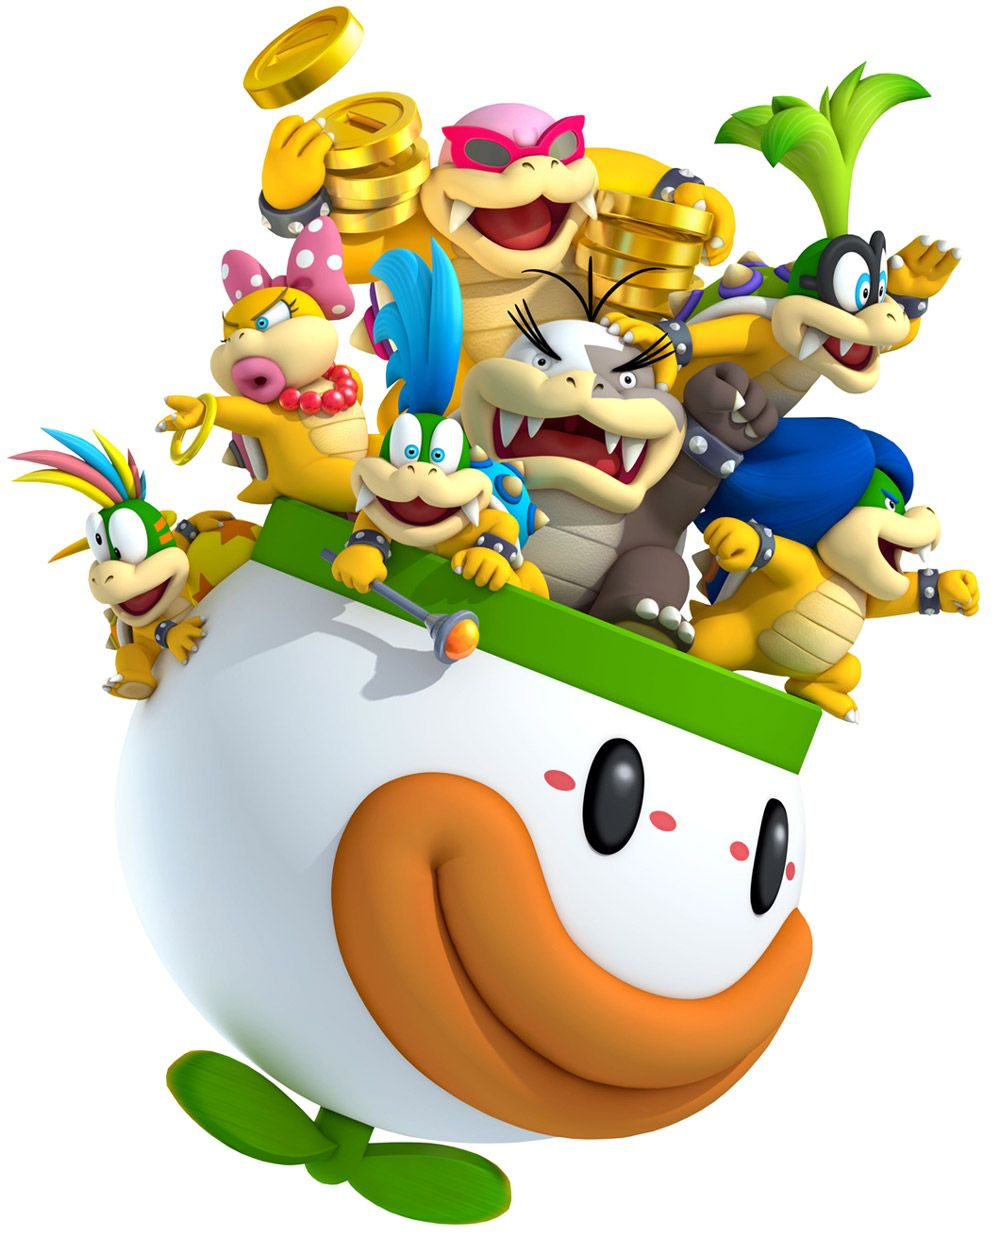 New Super Mario Bros 2 Koopalings Super Mario Bros Nintendo